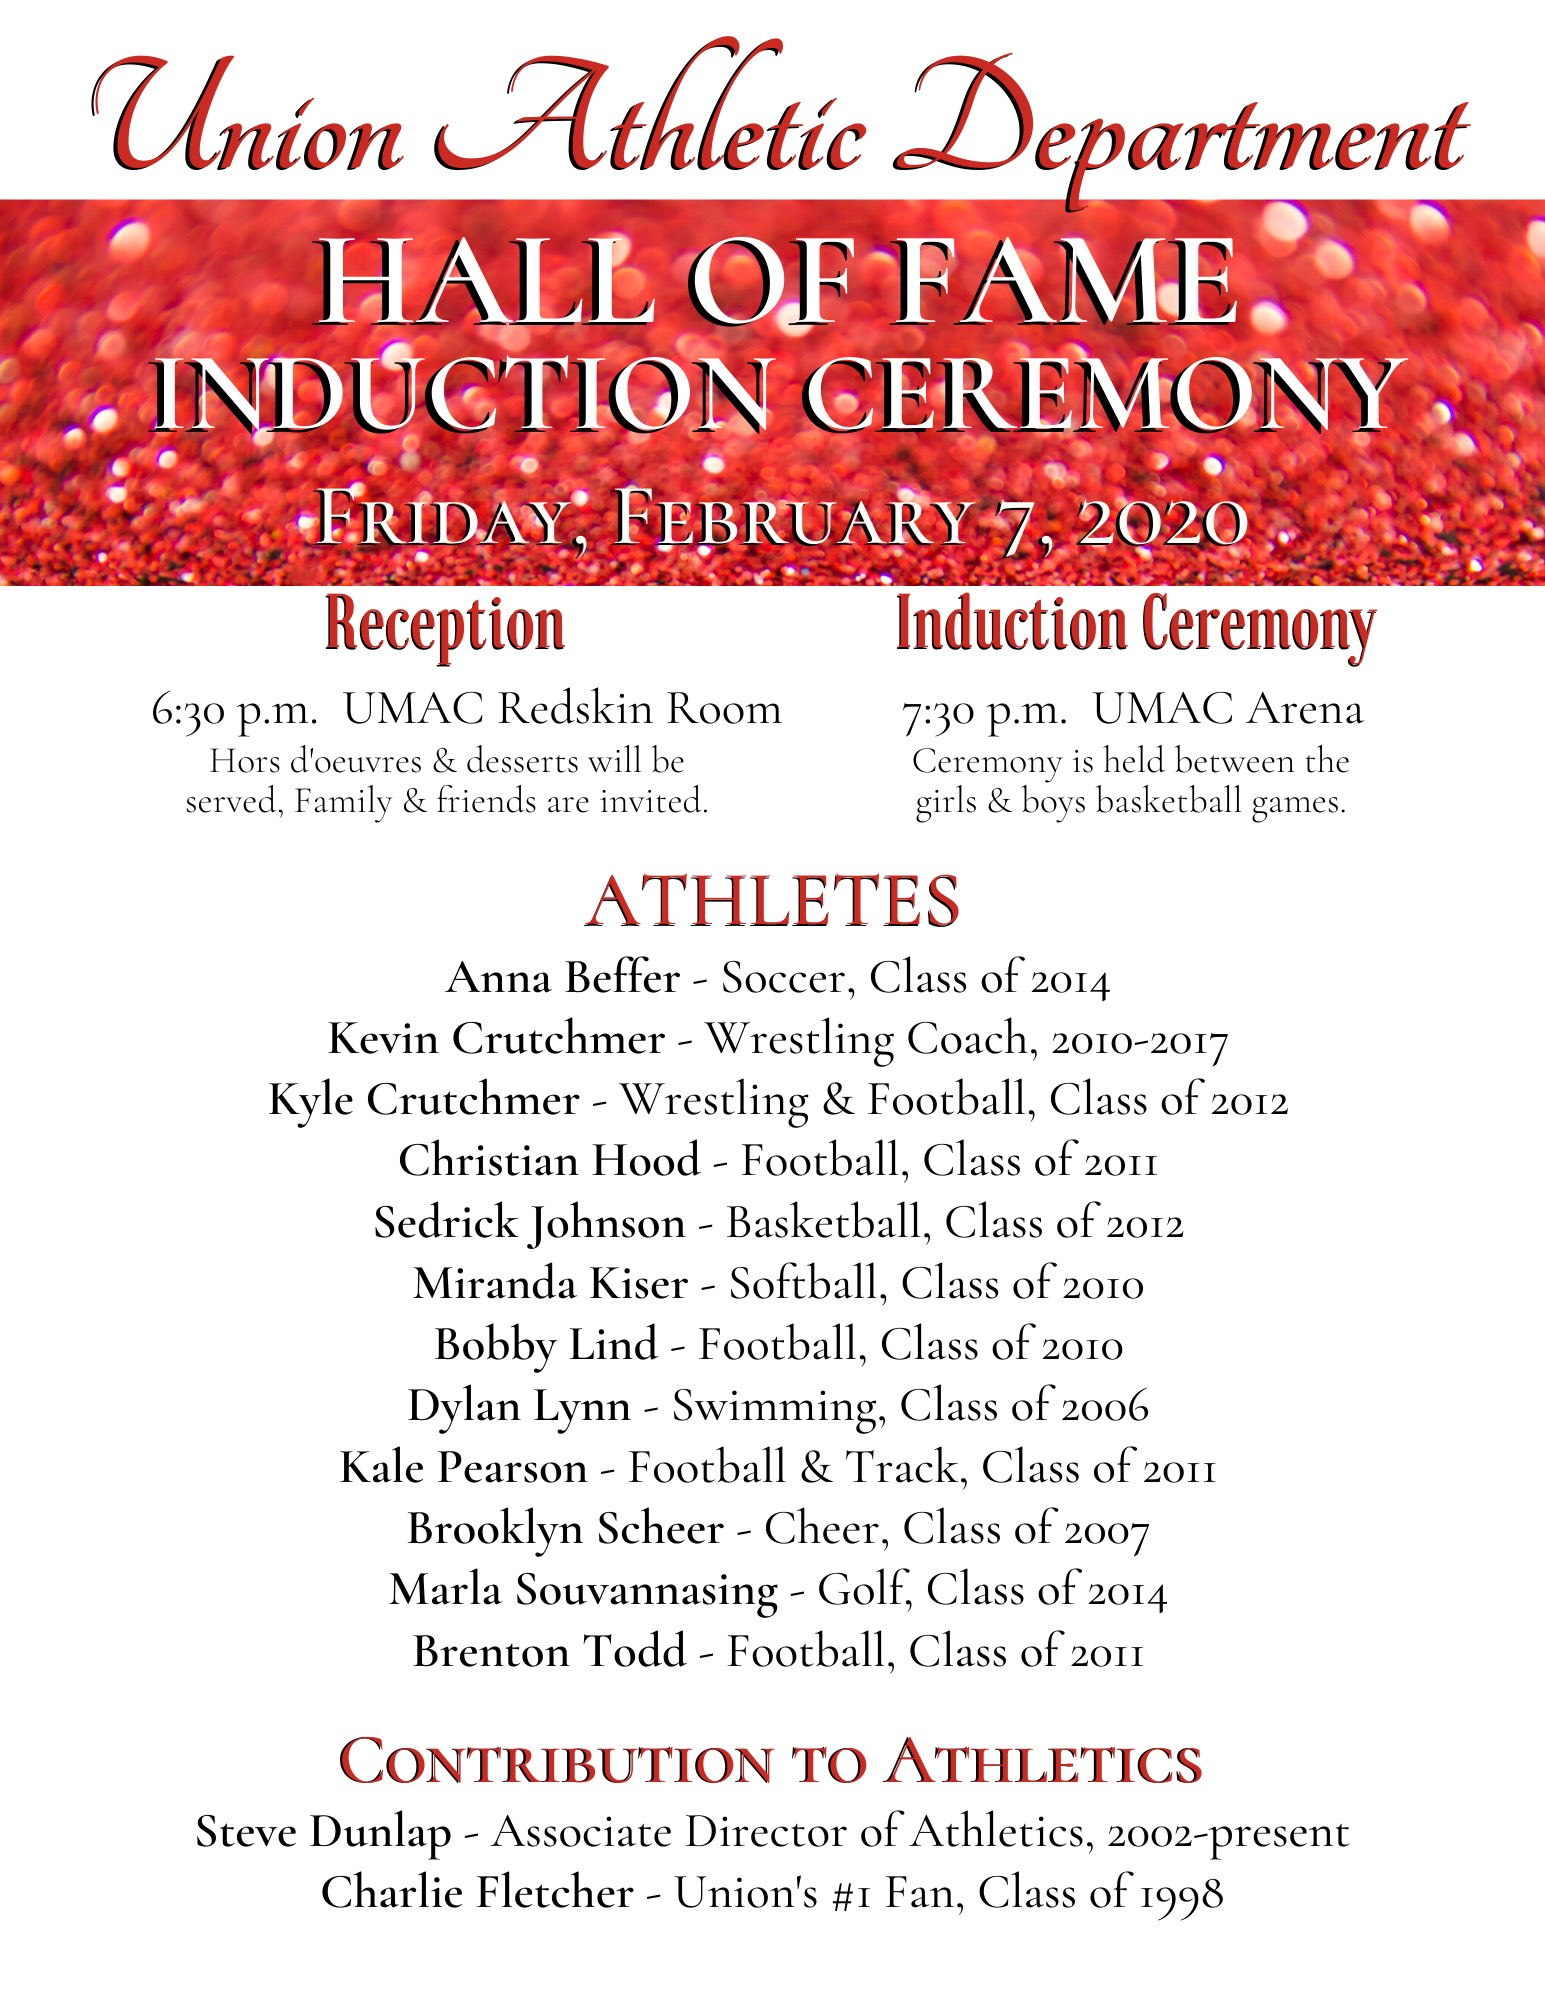 UNION ATHLETIC DEPARTMENT ANNOUNCES 2019 HALL OF FAME CLASS!